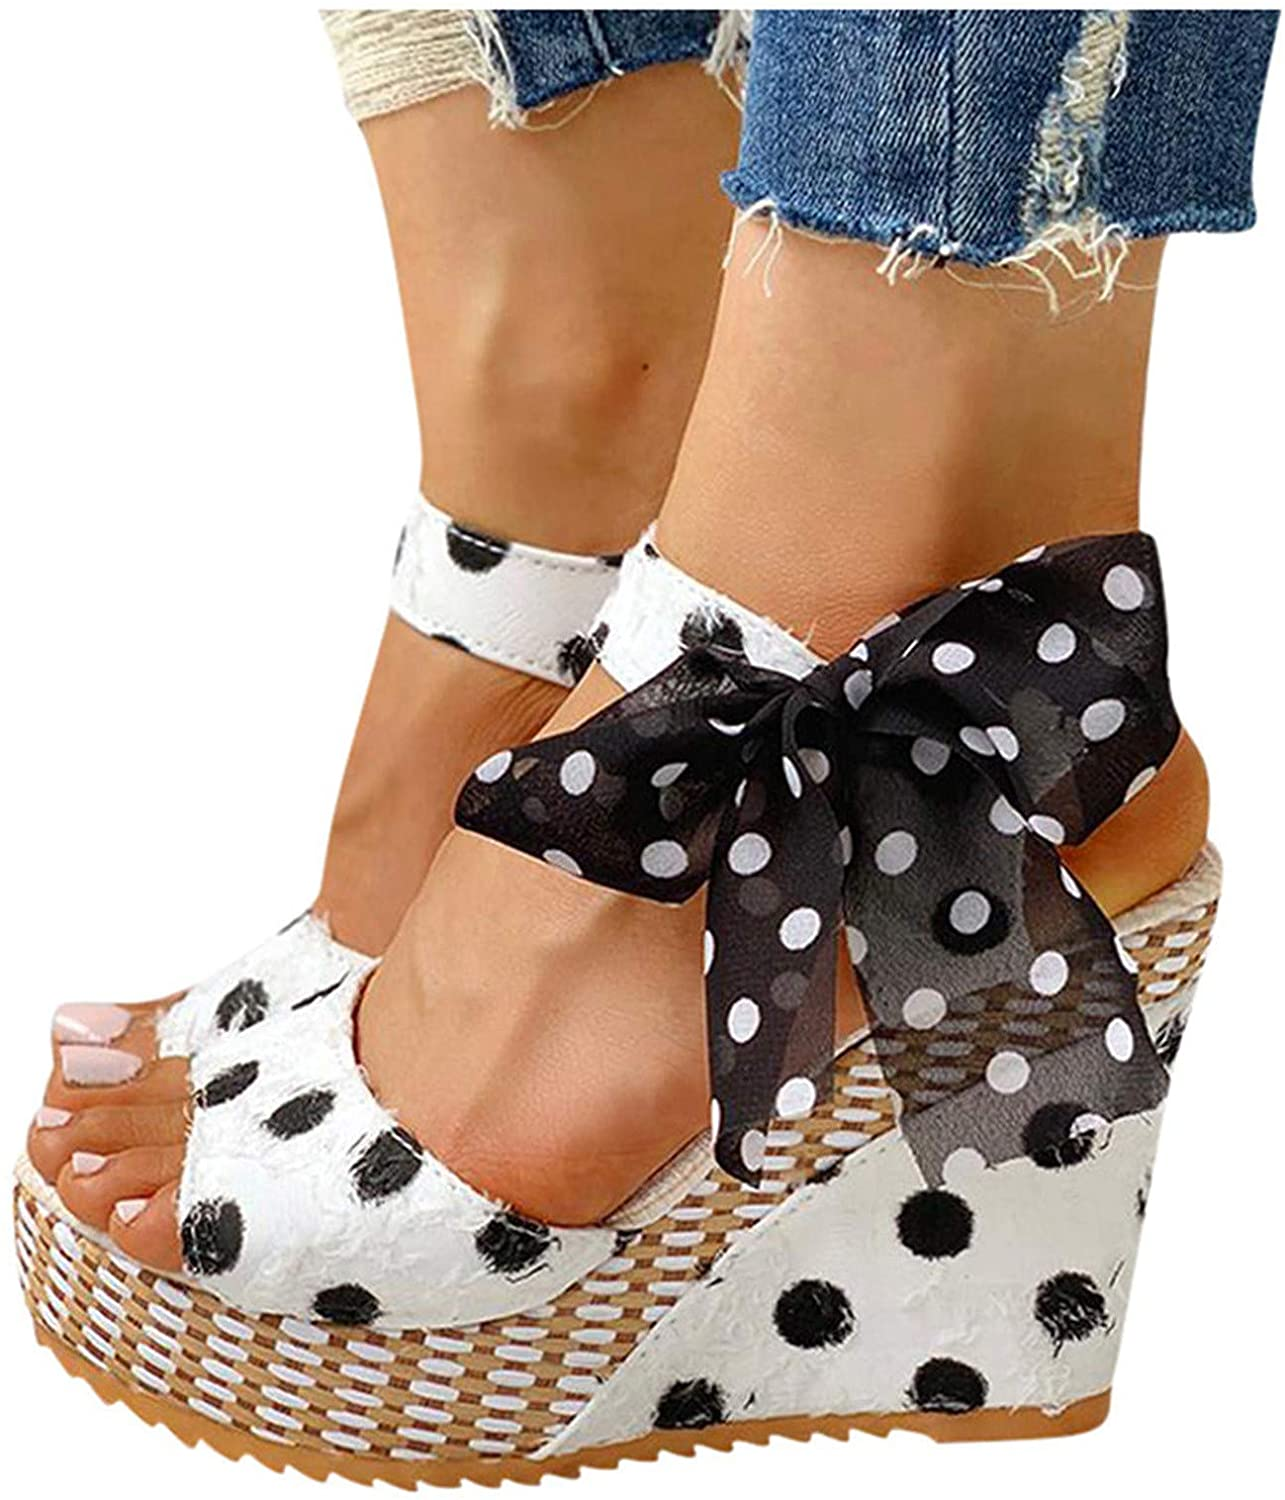 Xudanell Womens Sandals Daily bargain sale Casual Wedge Lace-up Dot Summer Limited time trial price